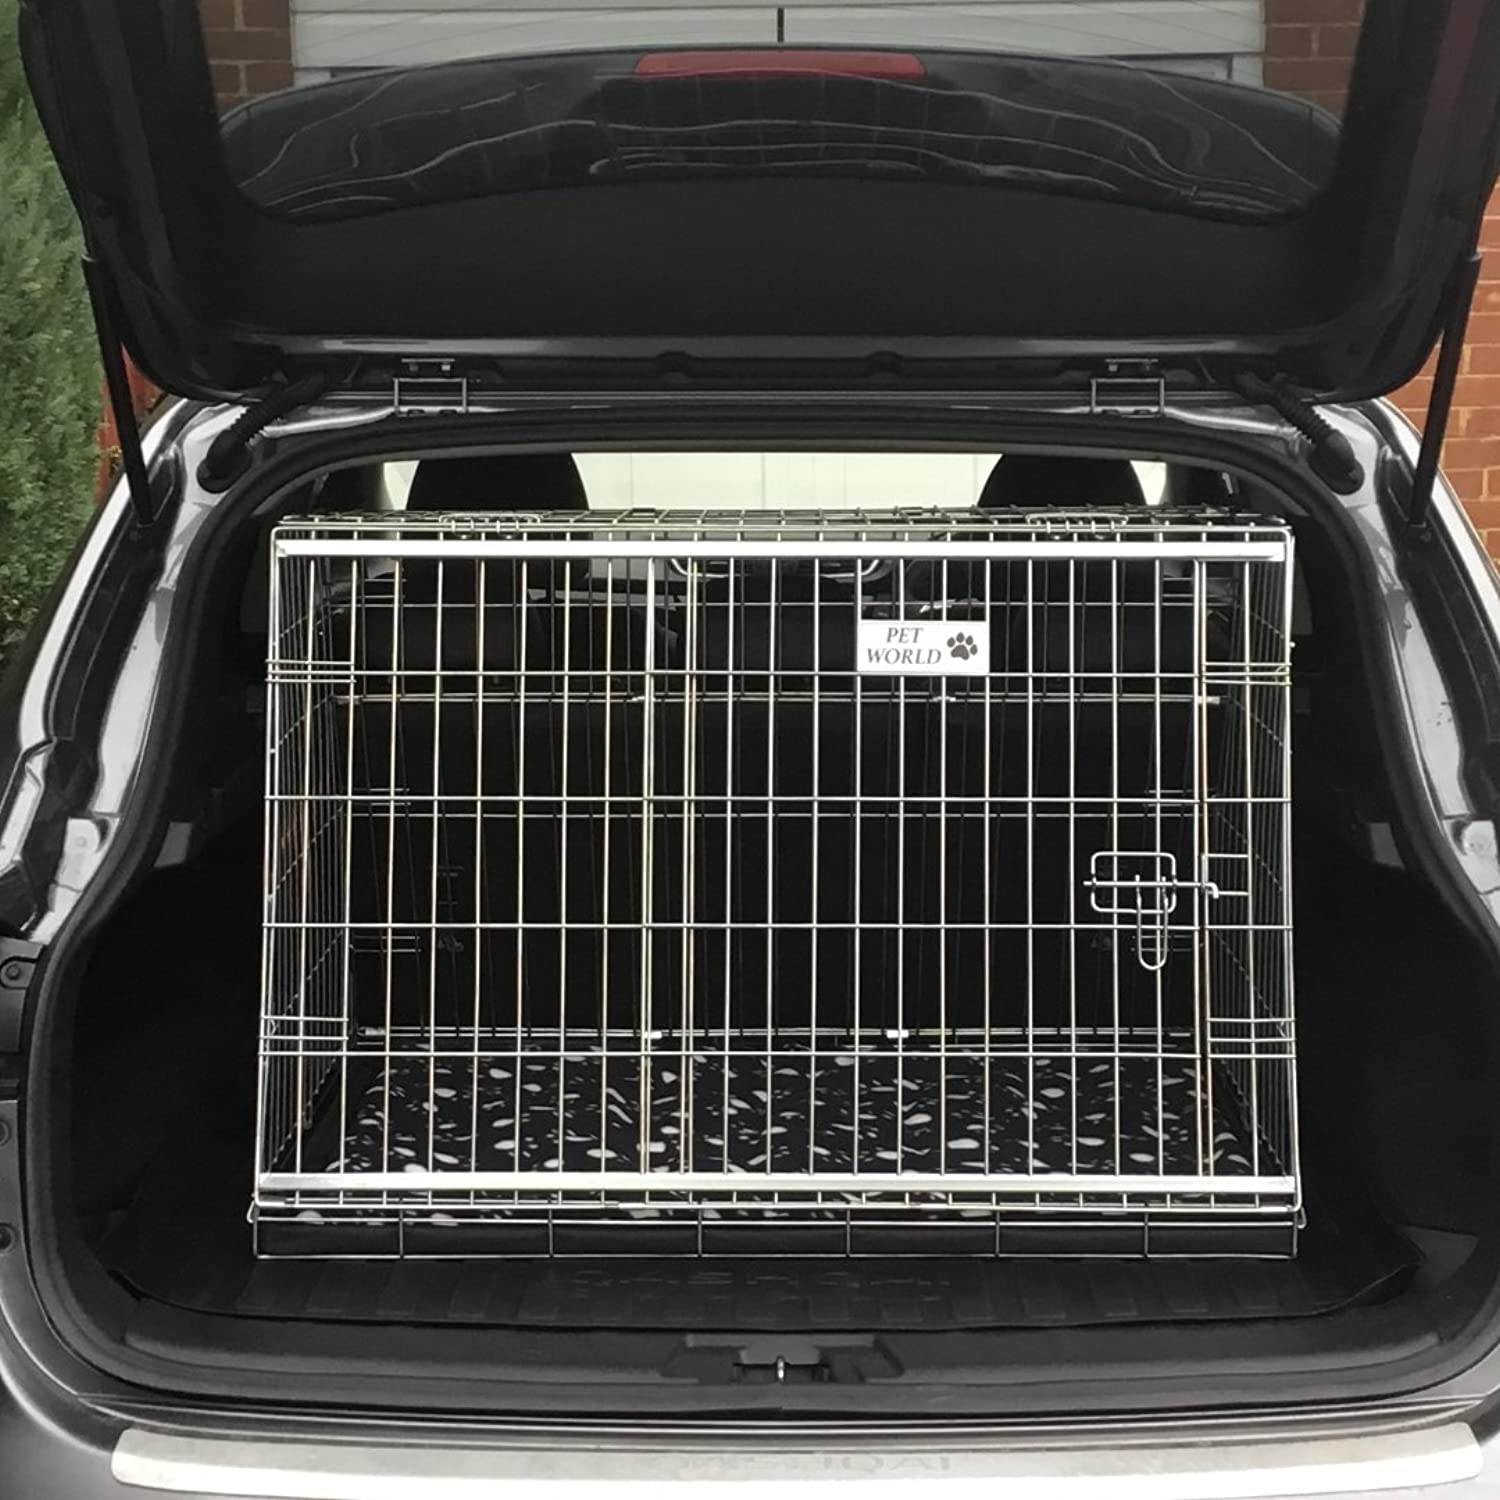 Arrow NISSAN QASHQAI 0711 REG CAR DOG CAGE SLOPED FRONT GUARD PUPPY CRATE CARRIER